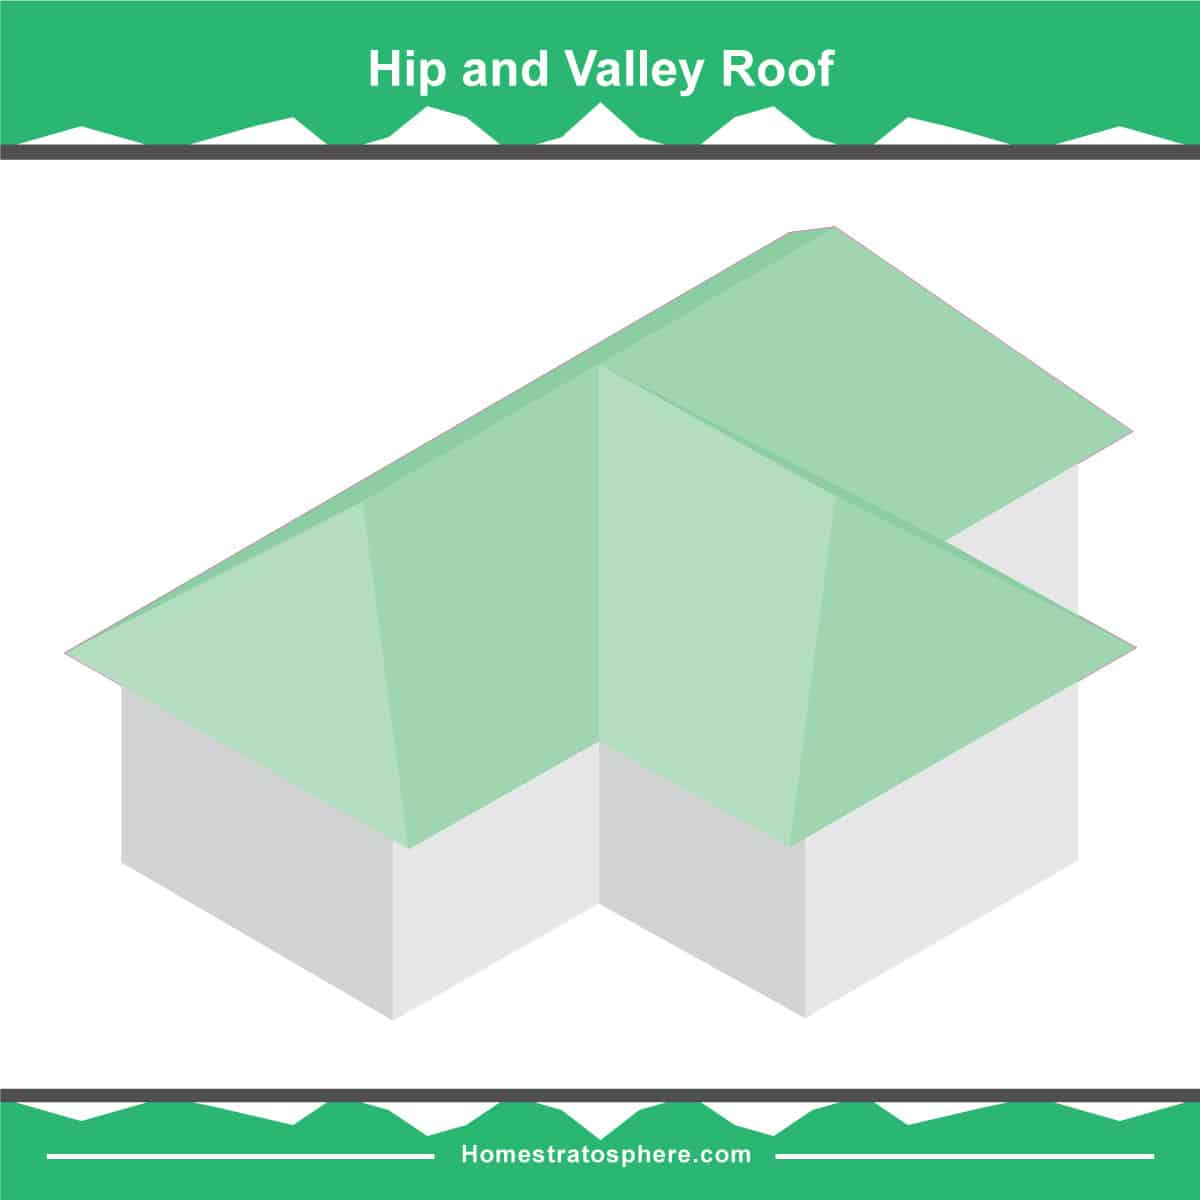 Hip and valley roof diagram